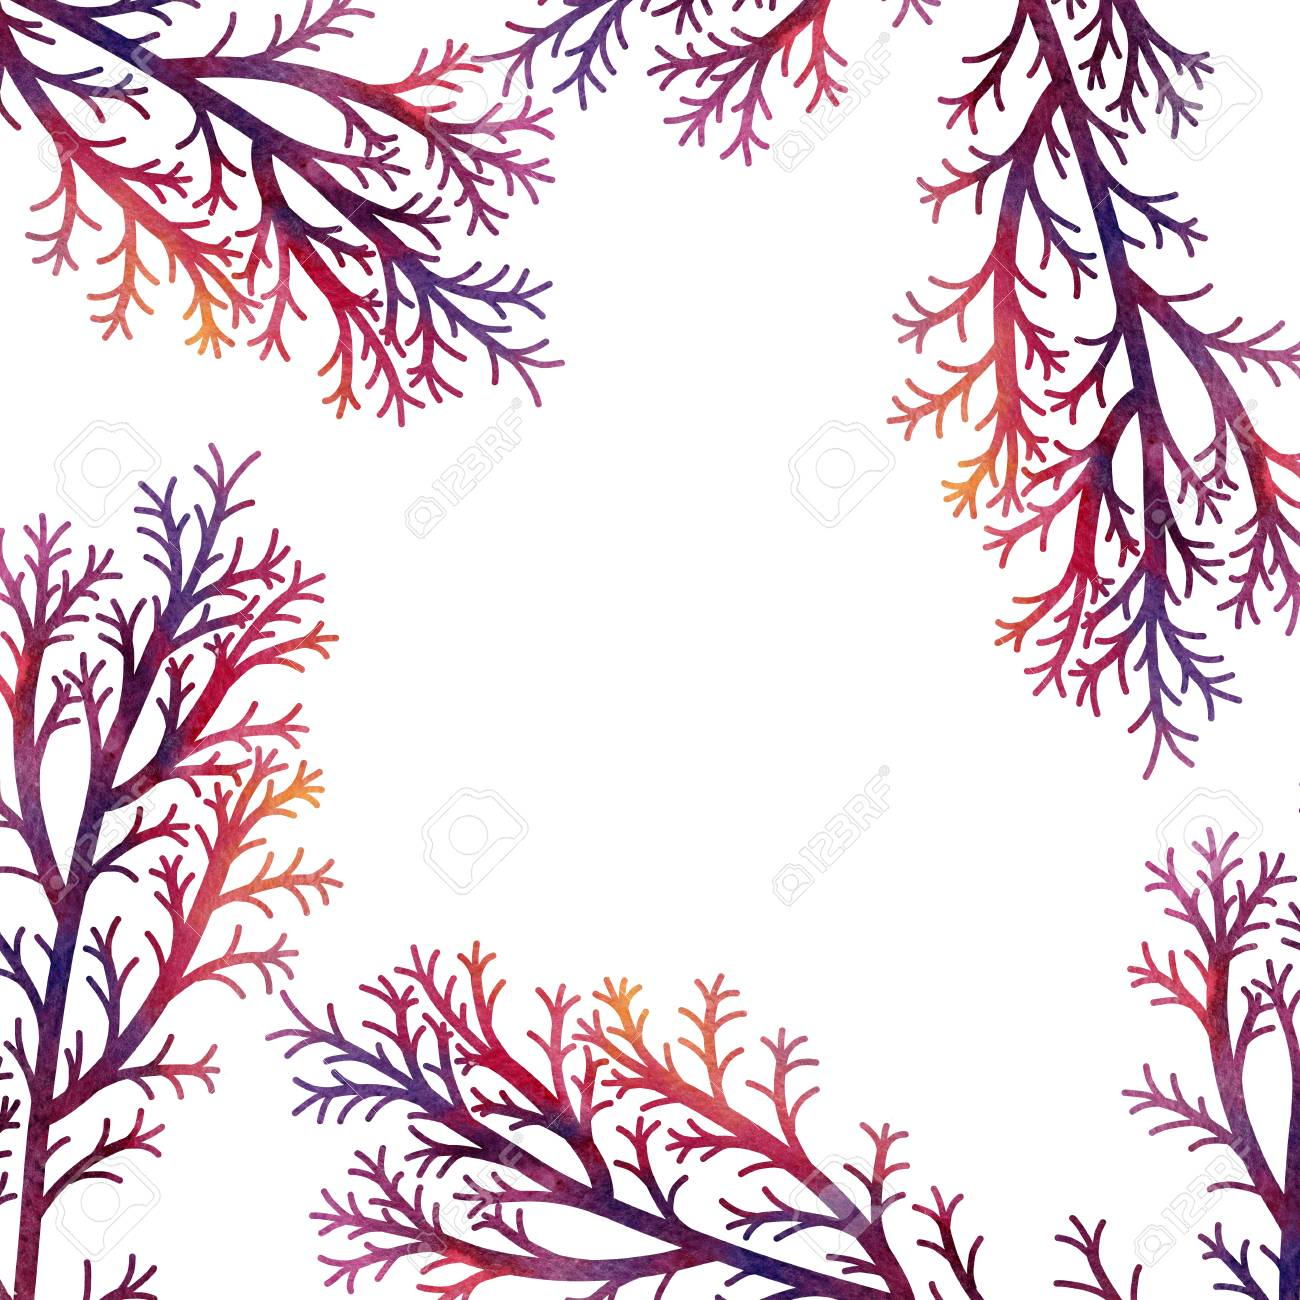 1300x1300 Silhouette Floral Composition With Wild Plants Drawing